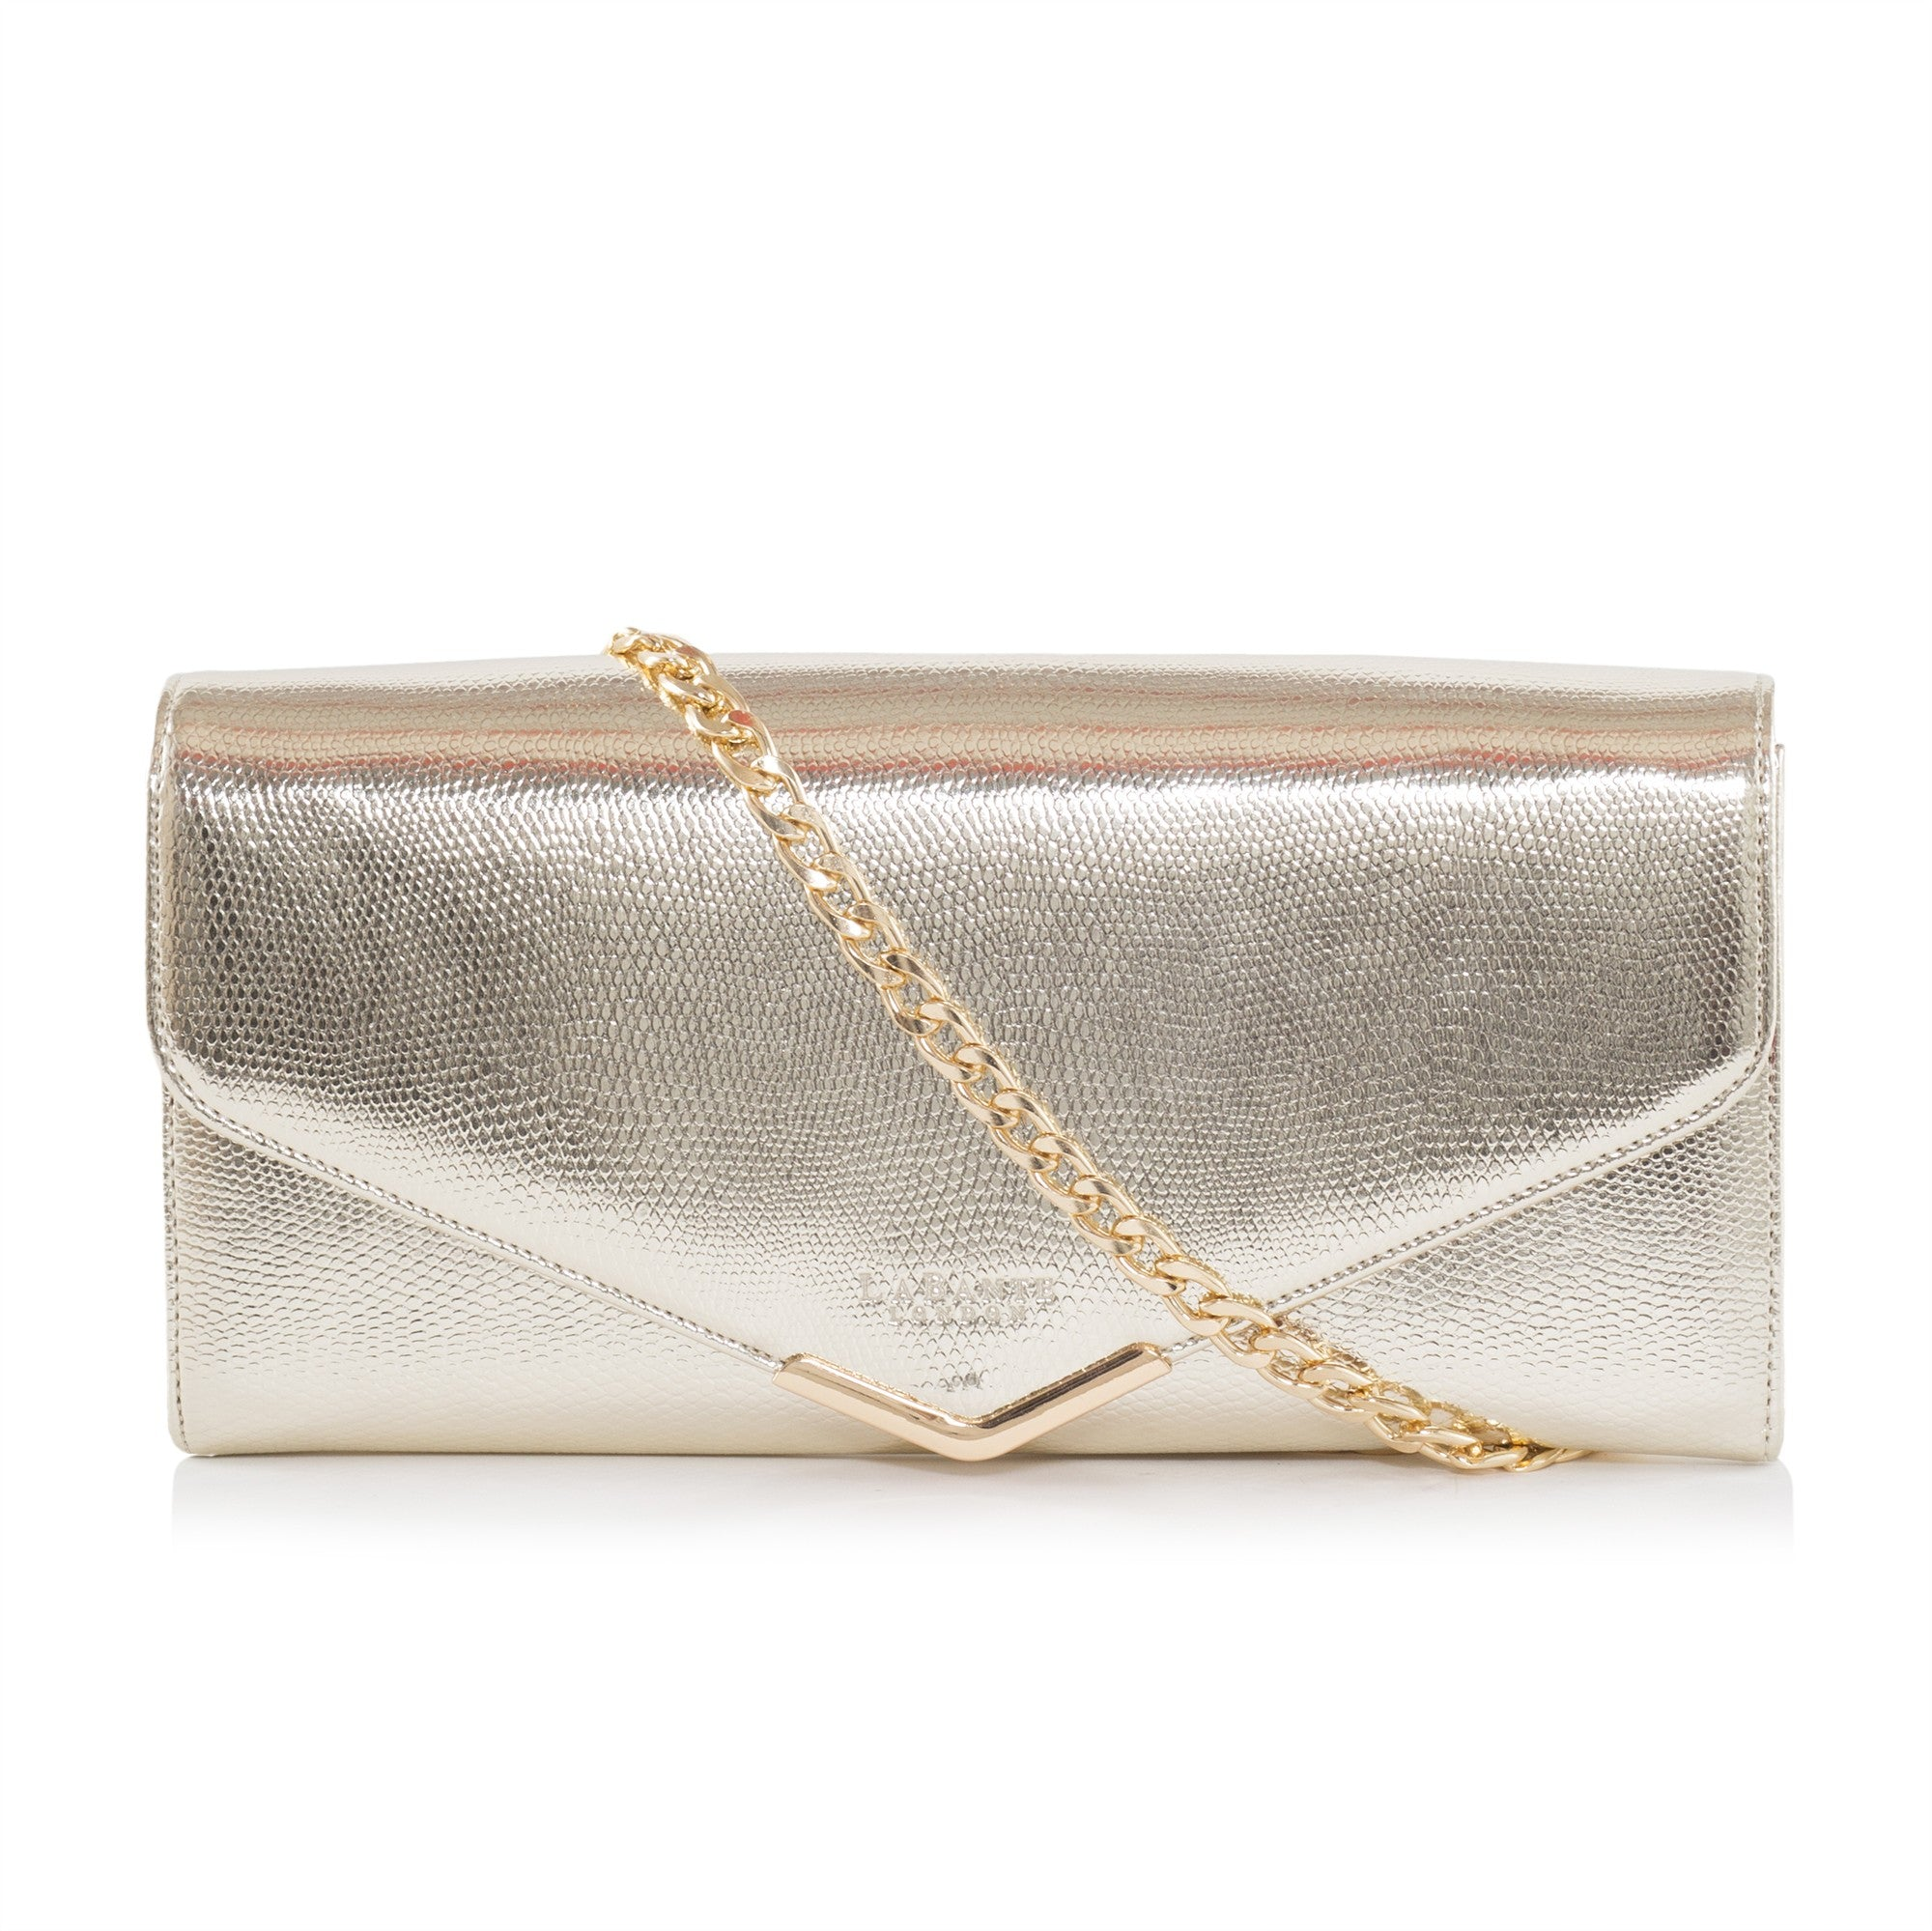 Starling Gold purse bag